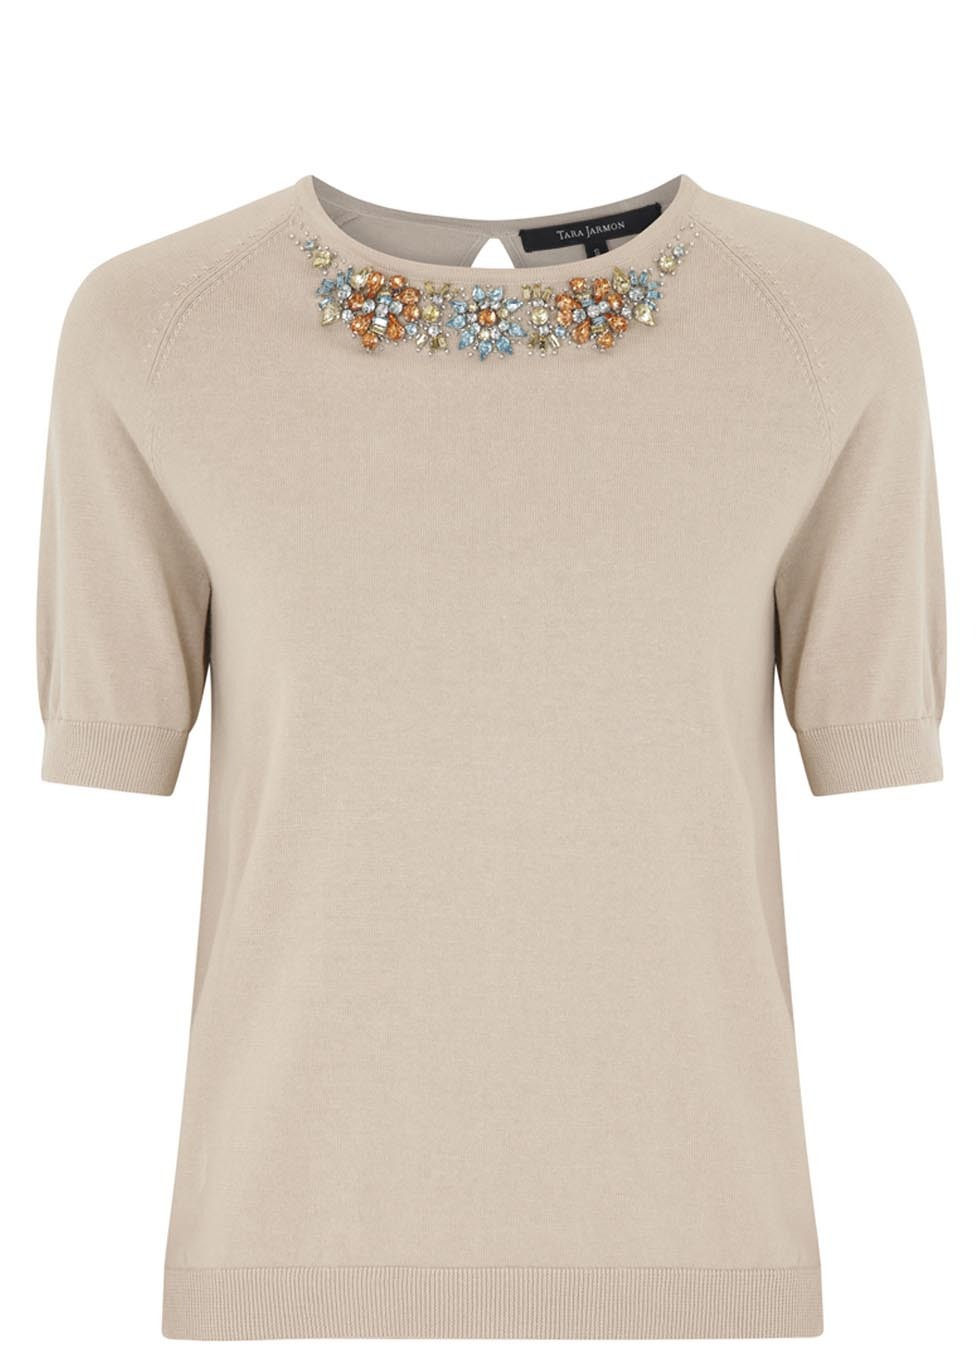 Crystal Embellished Cotton Top - neckline: round neck; pattern: plain; predominant colour: stone; occasions: casual, evening, creative work; length: standard; style: top; fibres: cotton - 100%; fit: body skimming; sleeve length: short sleeve; sleeve style: standard; texture group: knits/crochet; pattern type: knitted - fine stitch; embellishment: jewels/stone; season: s/s 2014; wardrobe: highlight; embellishment location: neck